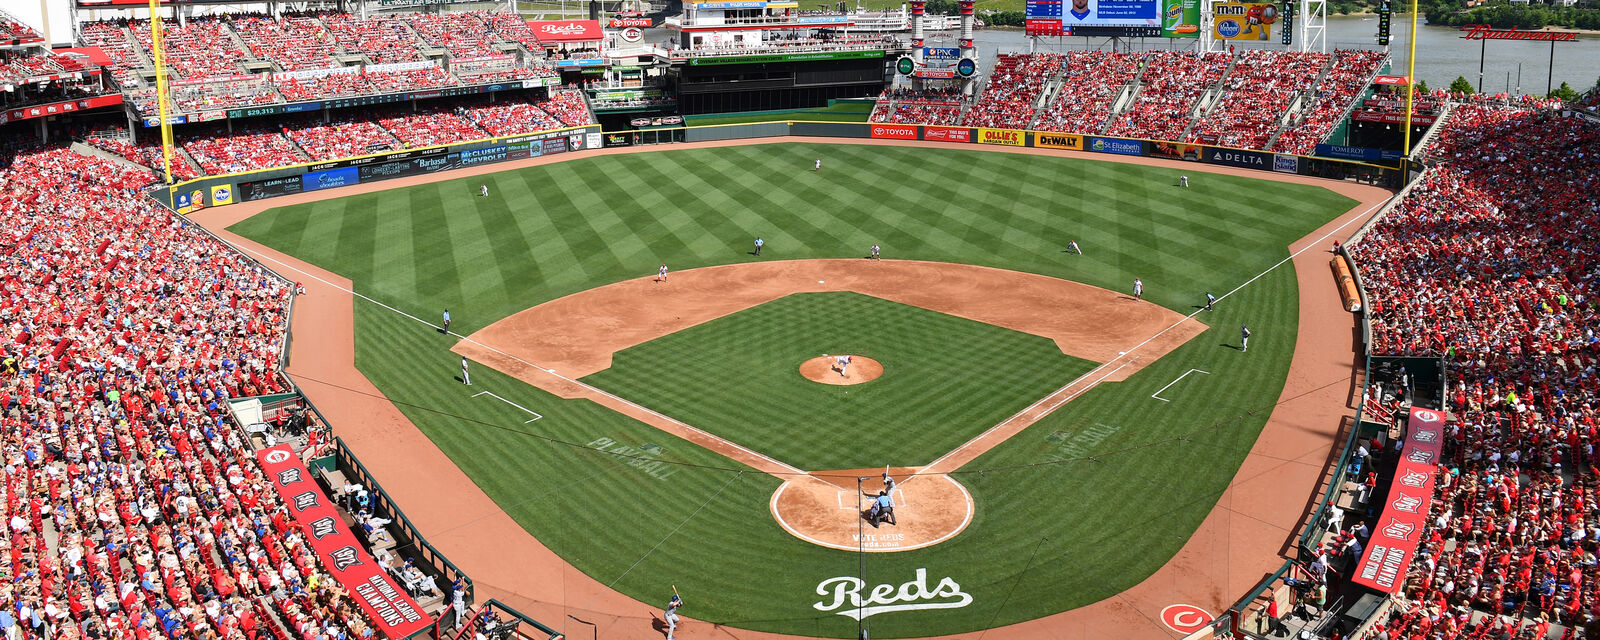 Detroit Tigers at Cincinnati Reds